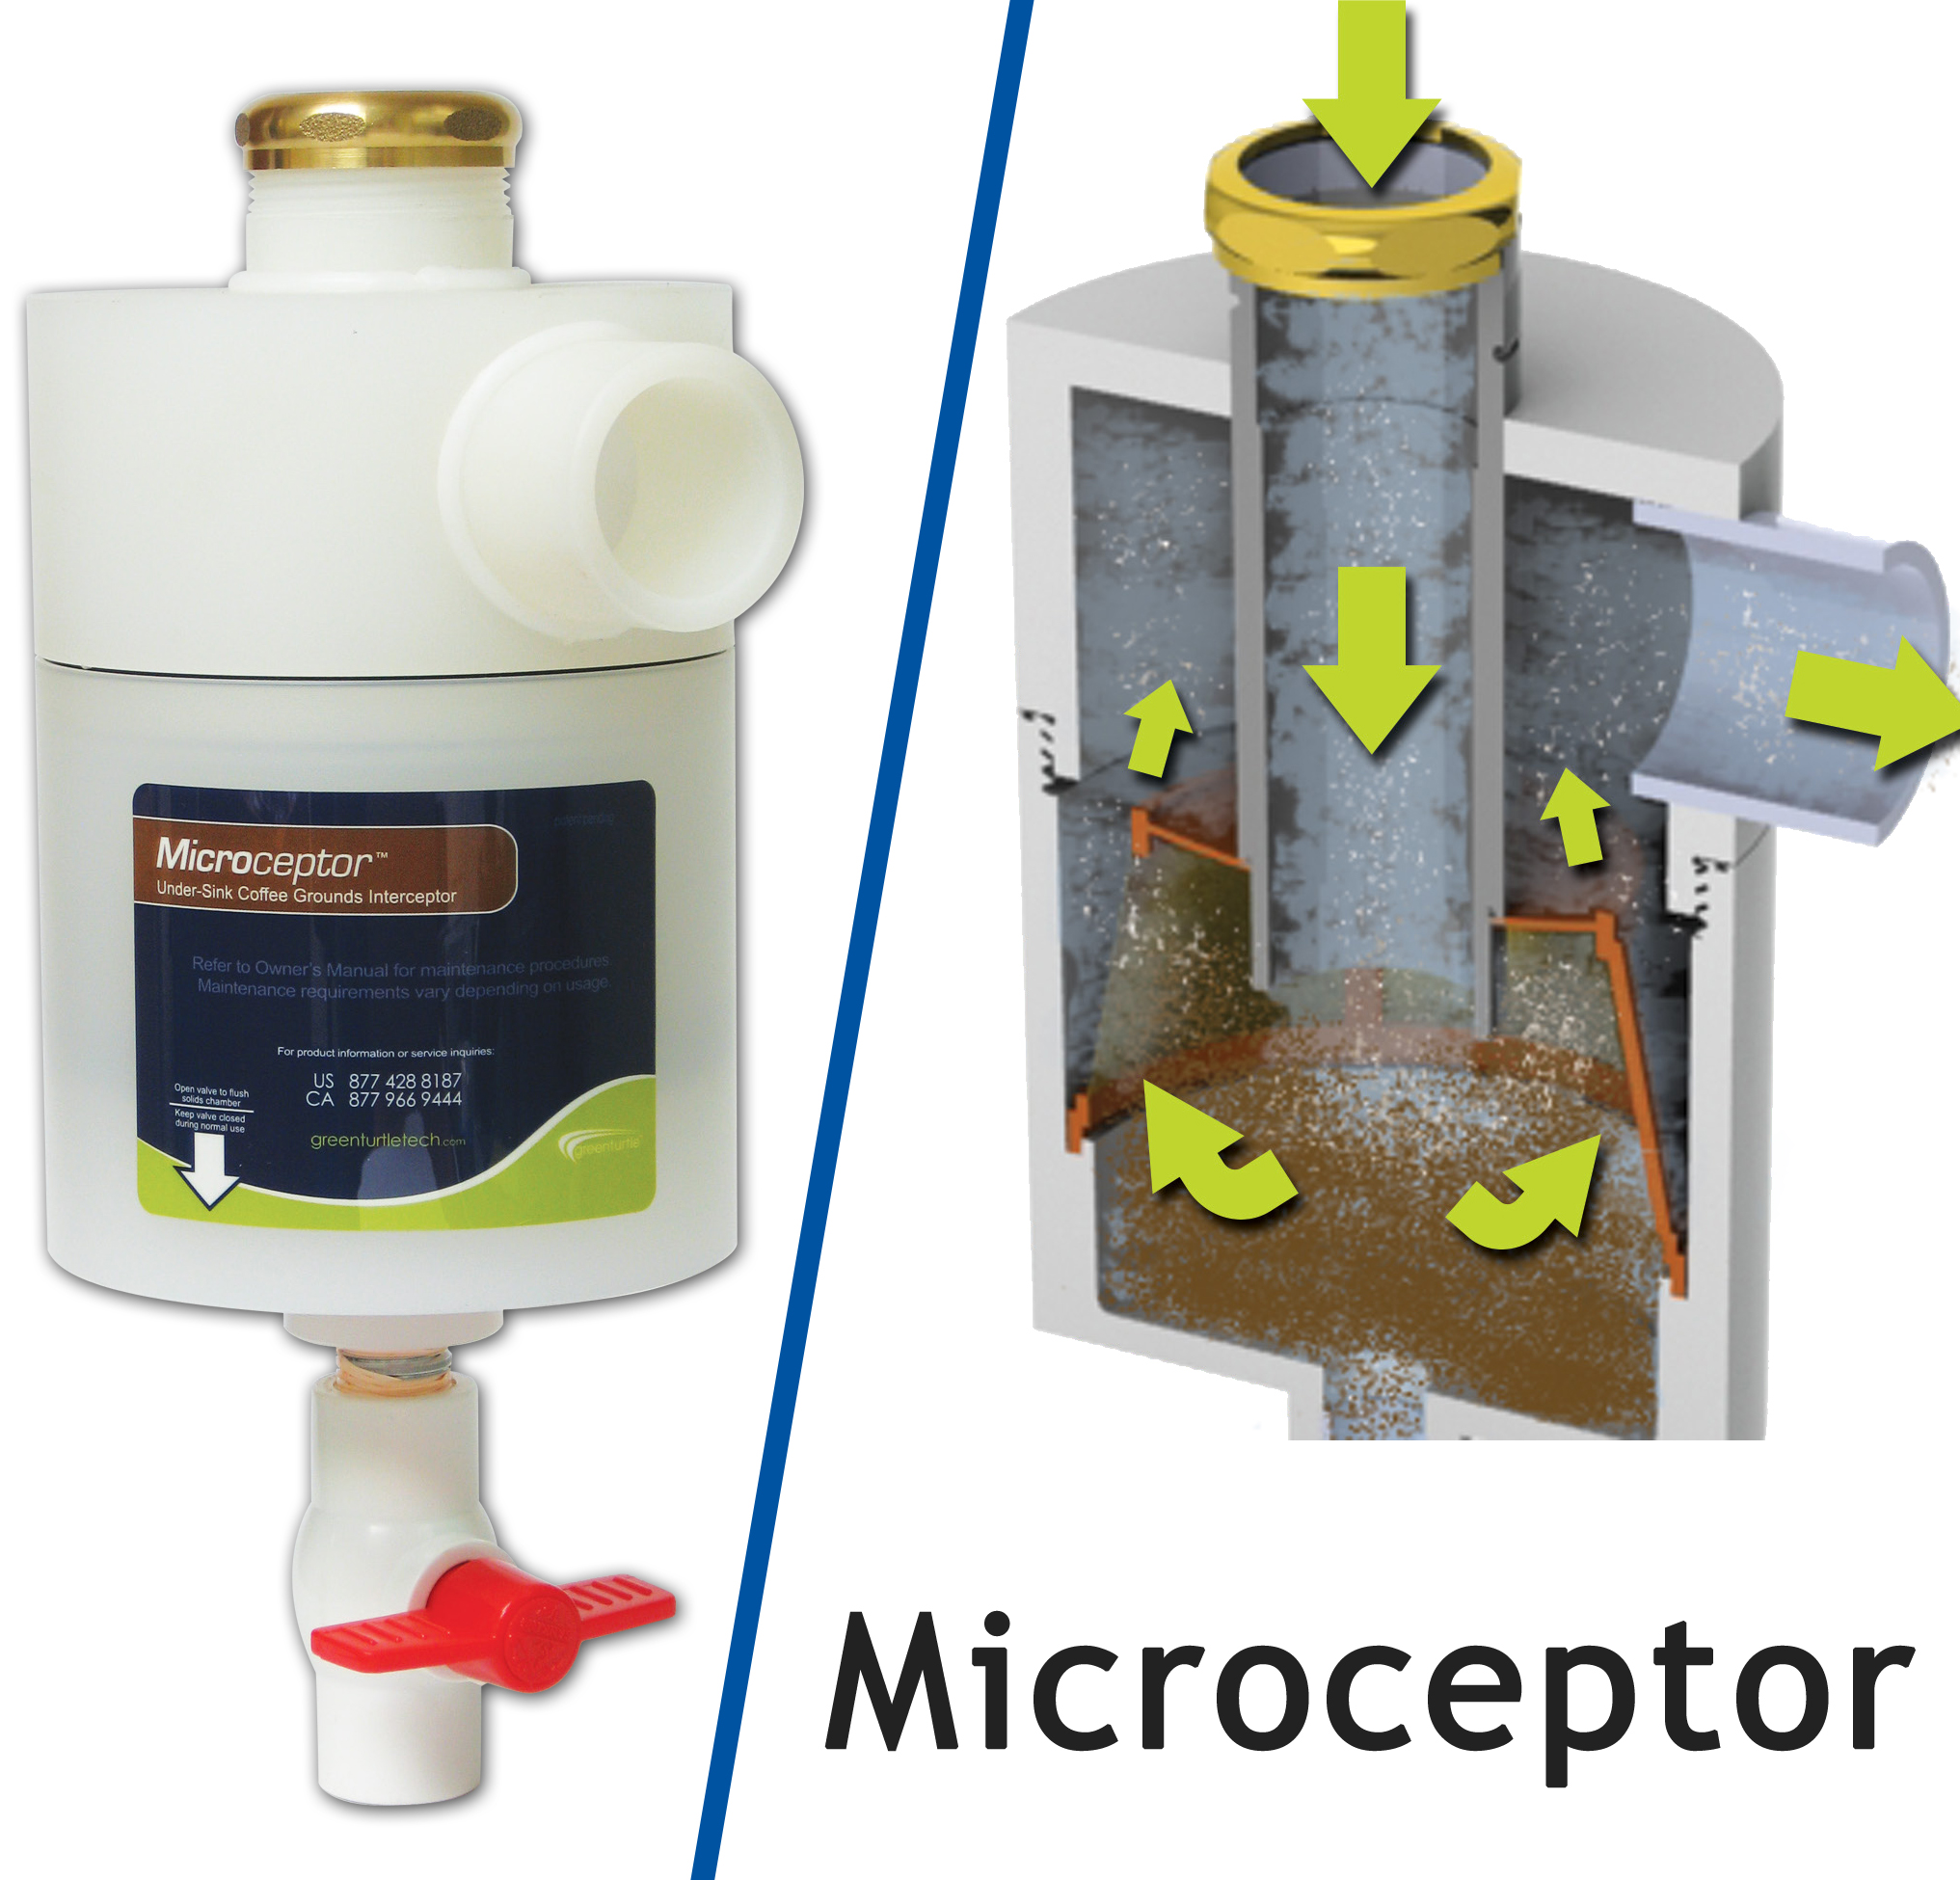 MICROCEPTOR - UNDER-SINK COFFEE GROUNDS INTERCEPTOR